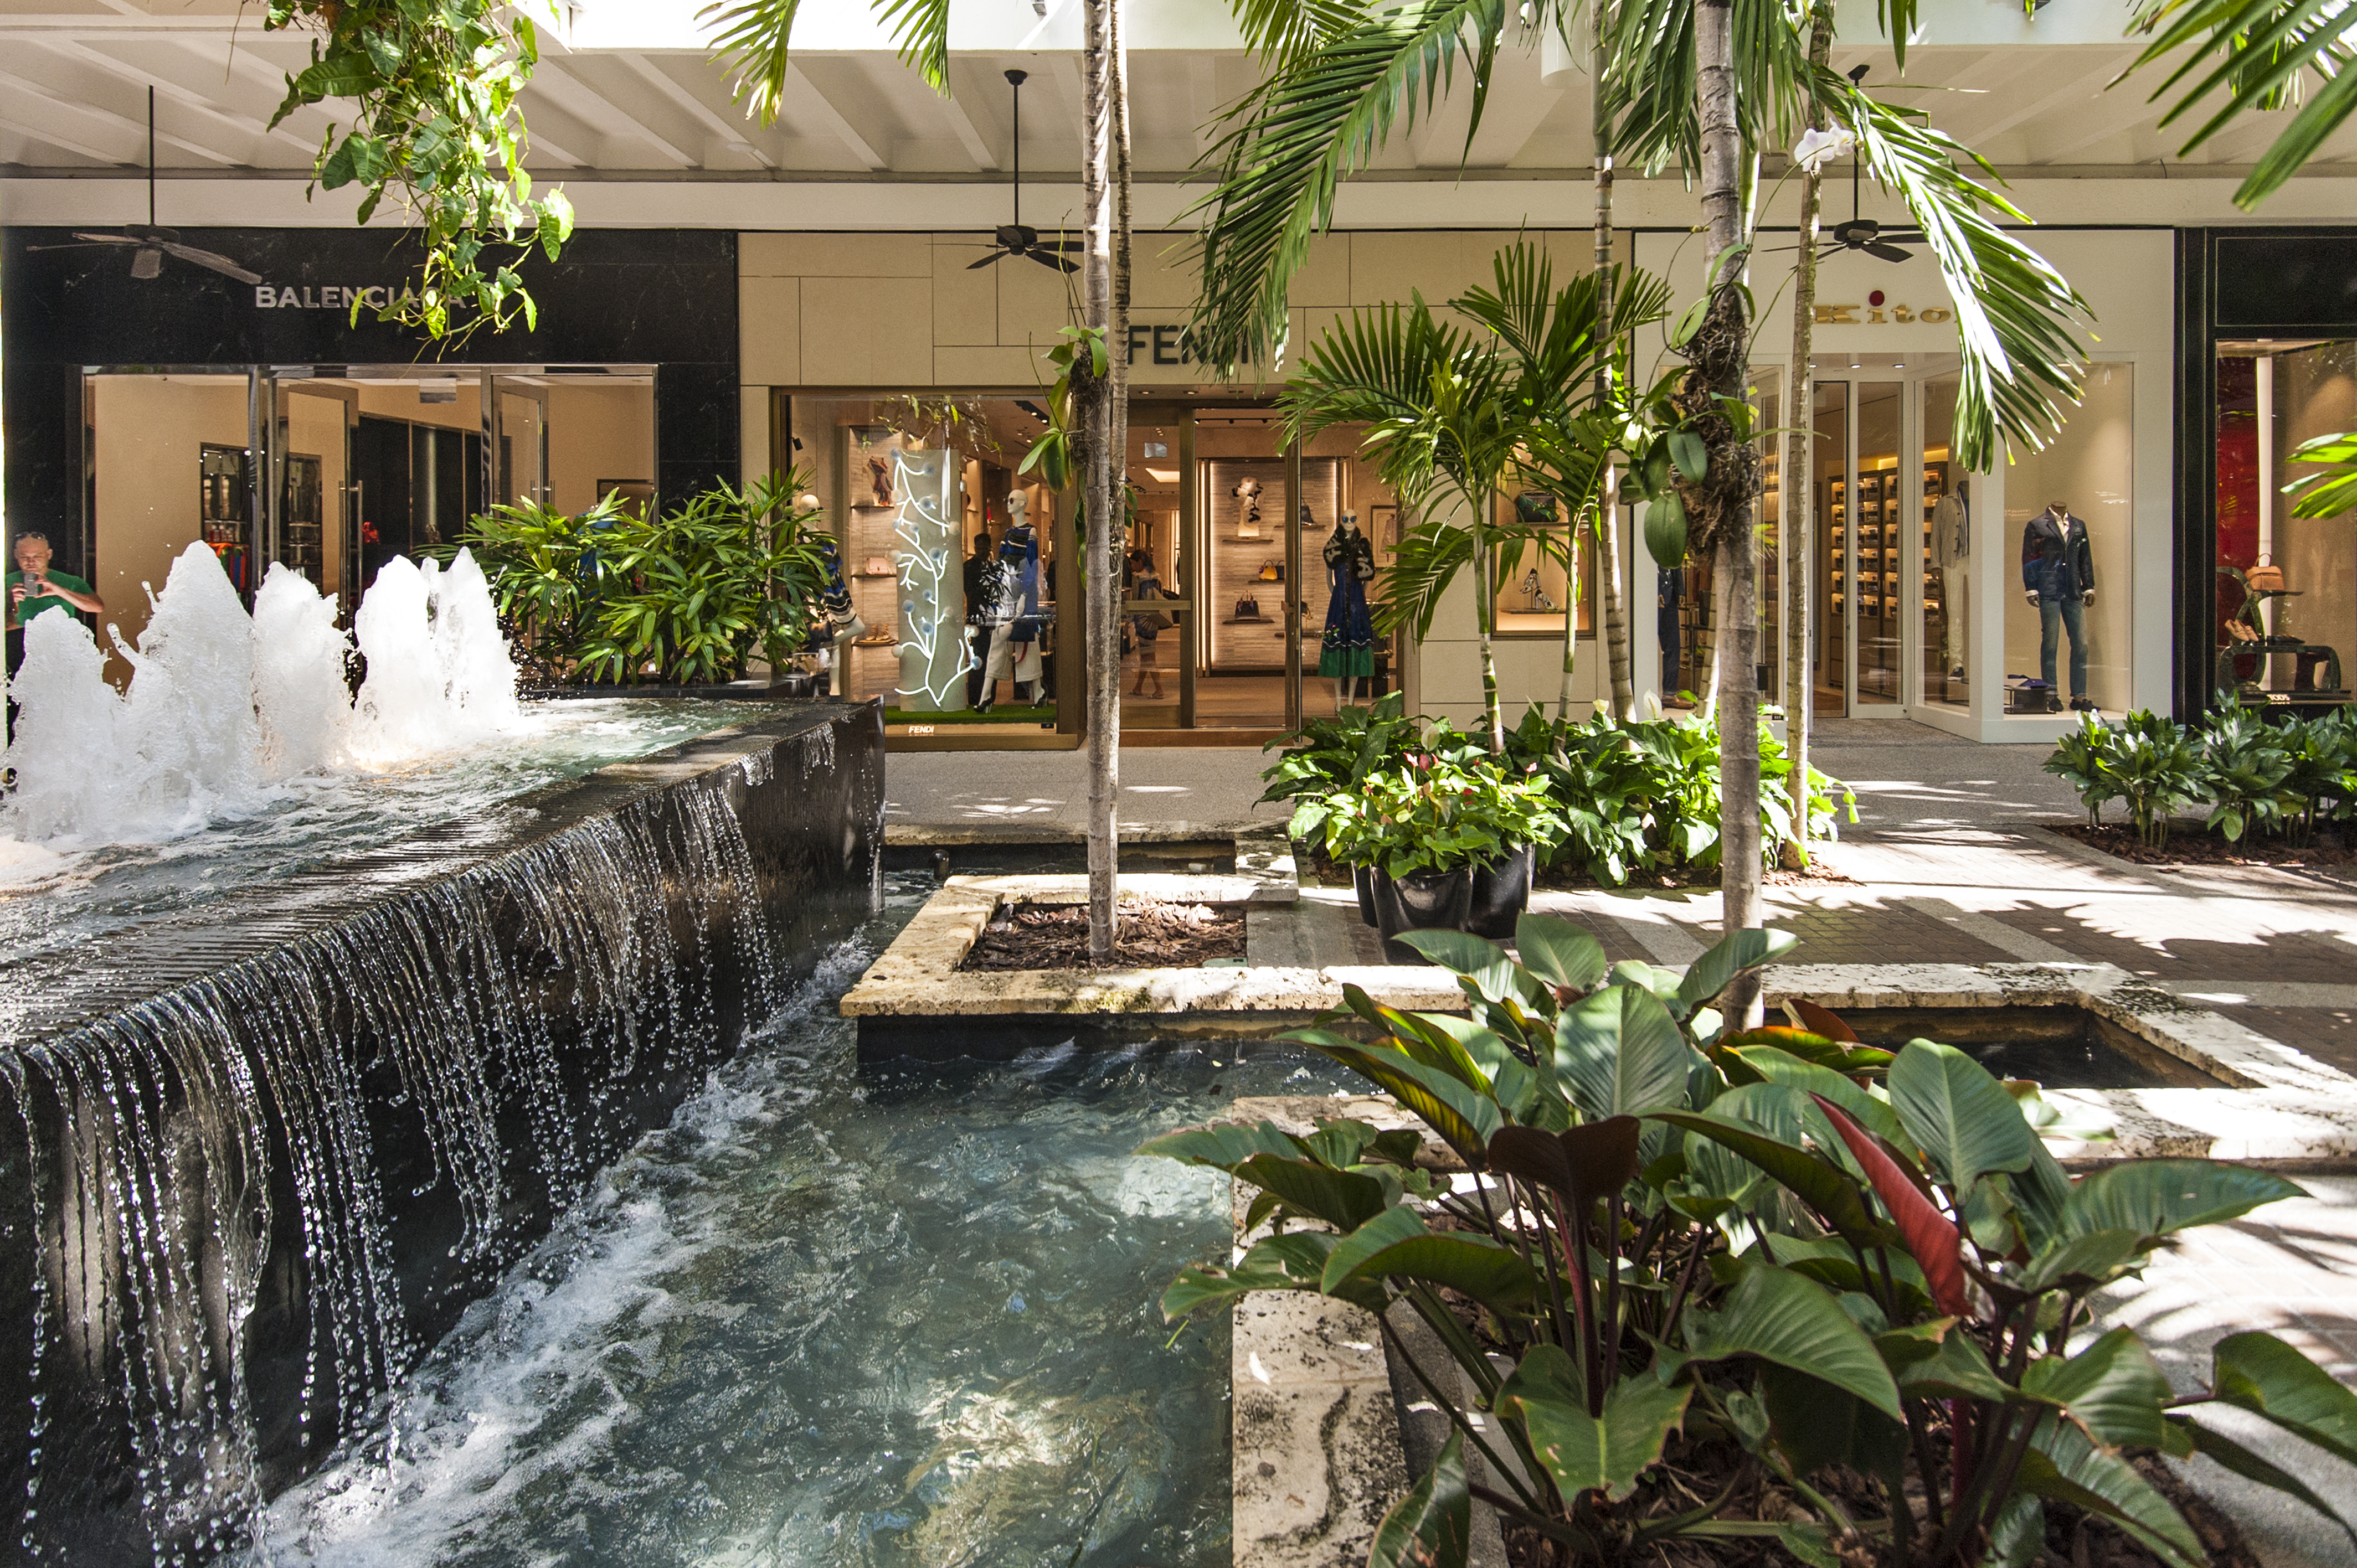 The center fountain at Bal Harbour Shops.